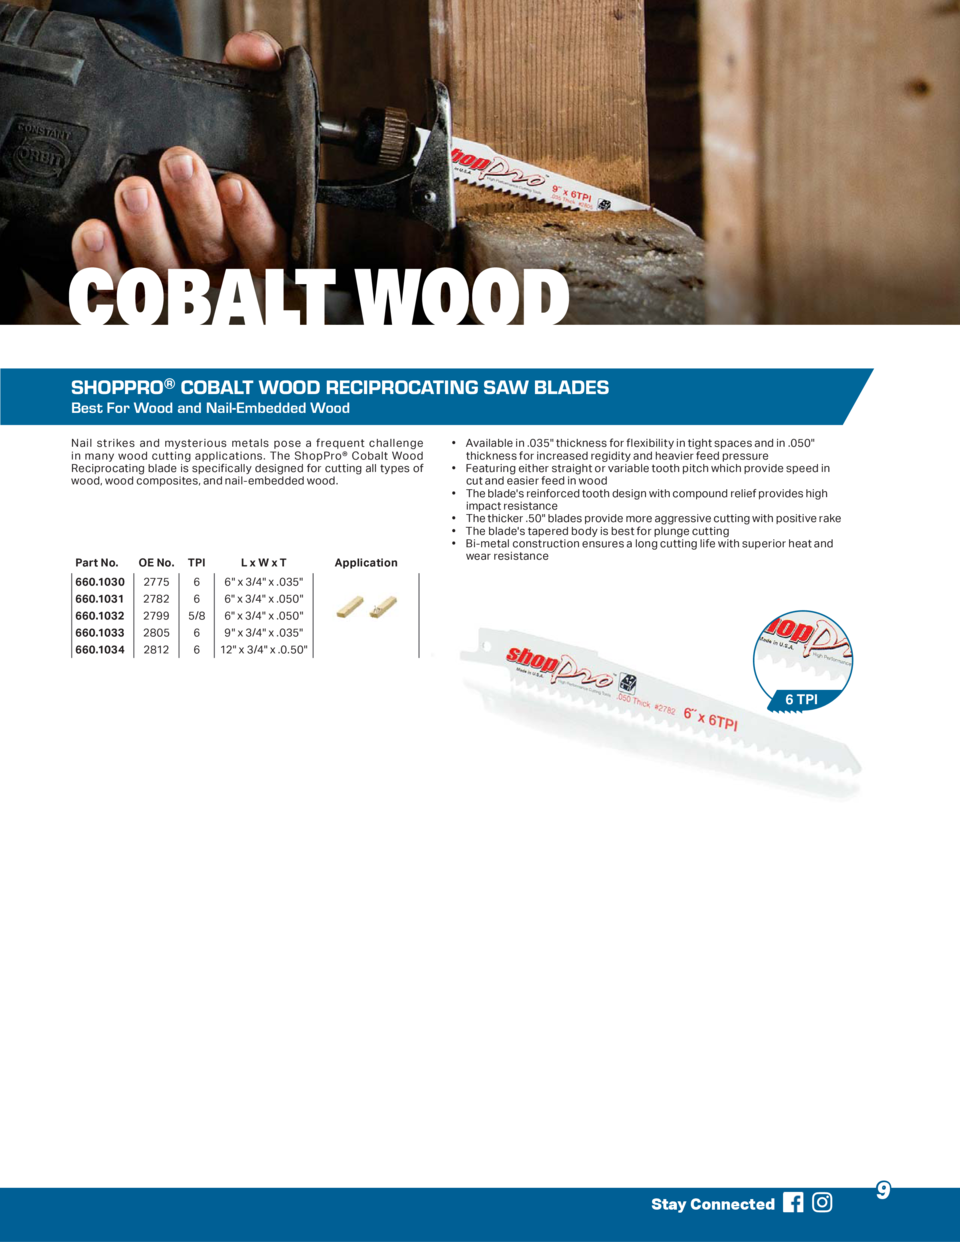 COBALT WOOD SHOPPRO   COBALT WOOD RECIPROCATING SAW BLADES Best For Wood and Nail-Embedded Wood Nail strikes and mysteriou...